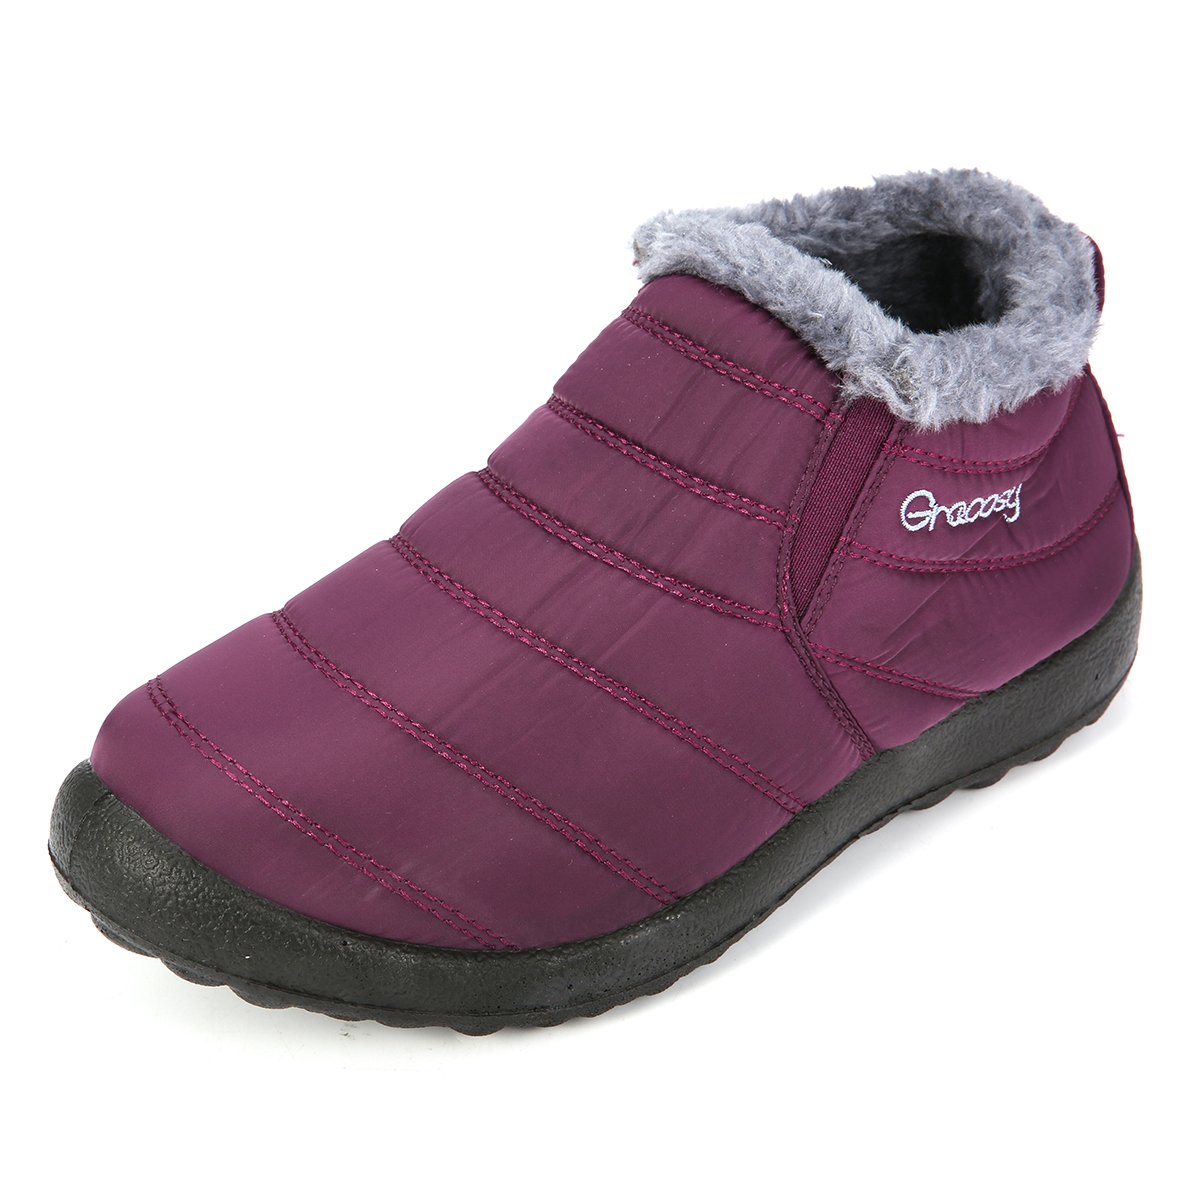 Fur Lining Boots,Waterproof Thickening Winter Shoes for Women and Men Winter Warm Ankle Boots gracosy Warm Snow Boots